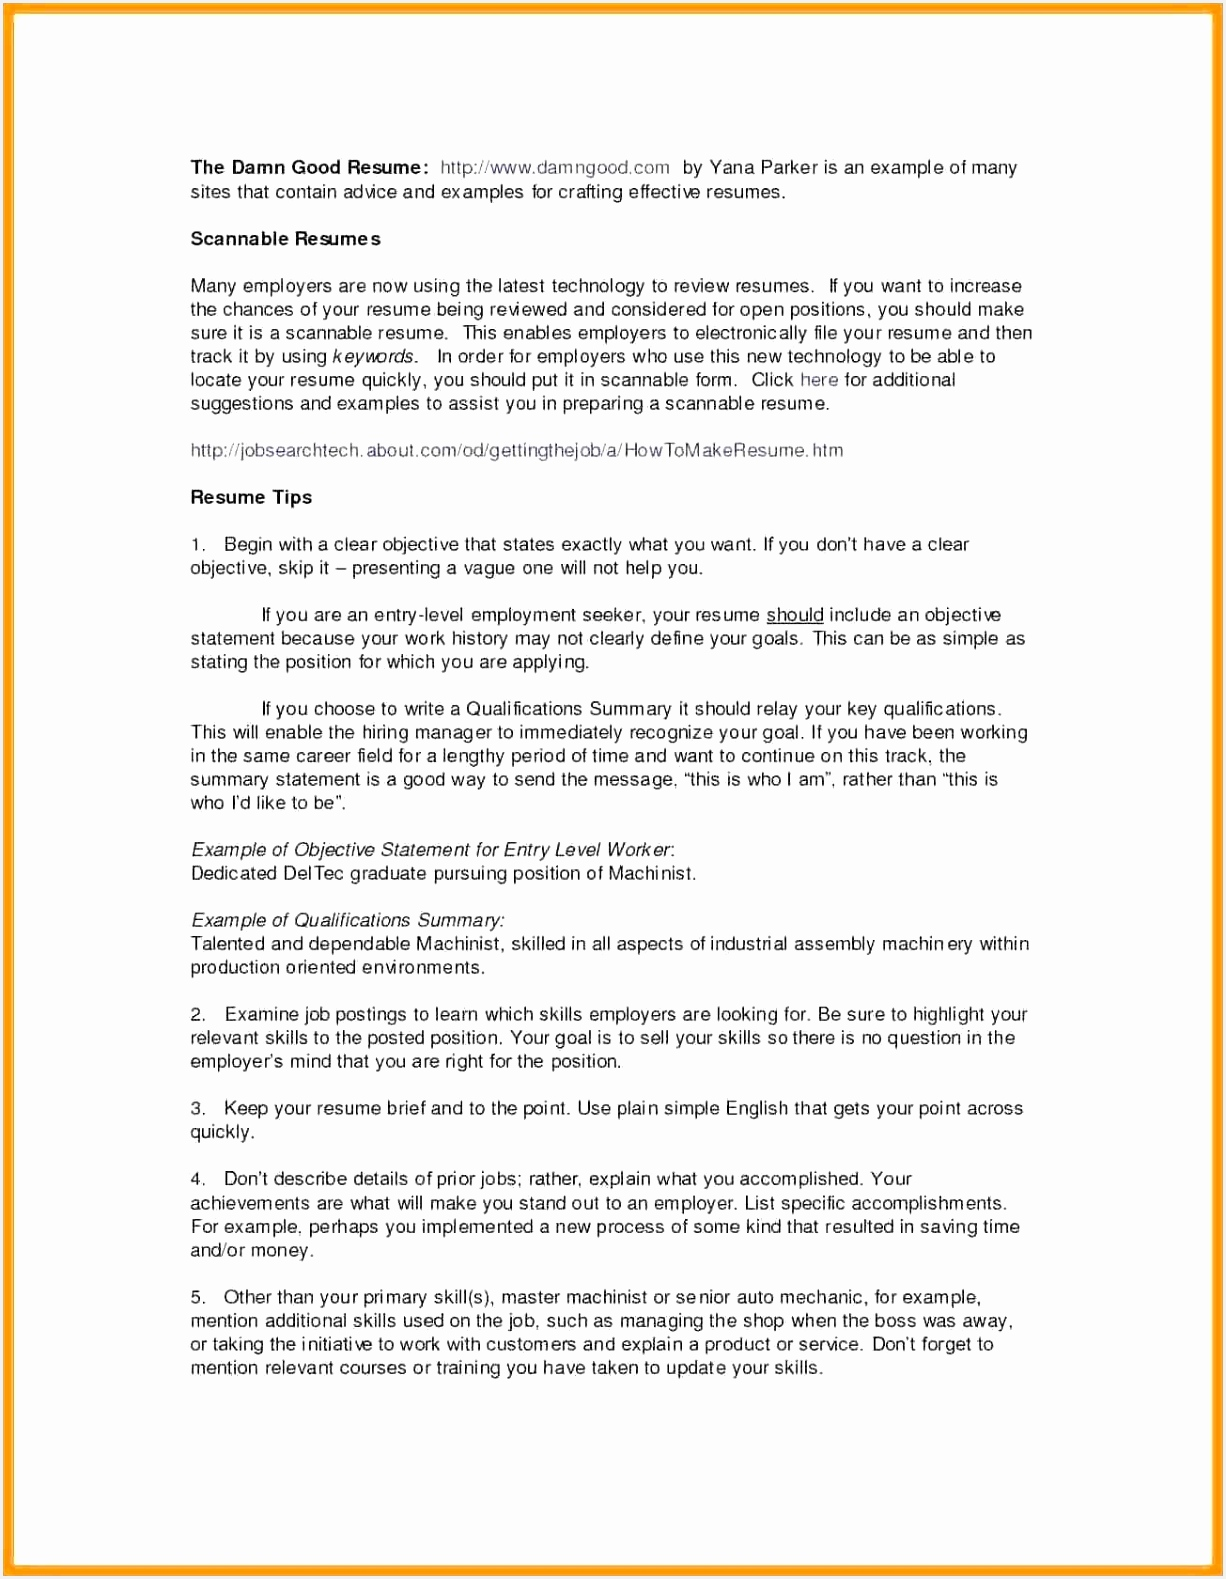 Teaching Job Application Letter Examples Inspirational 36 Inspirational Cover Letter for Teaching All About Resume 157912265pwve